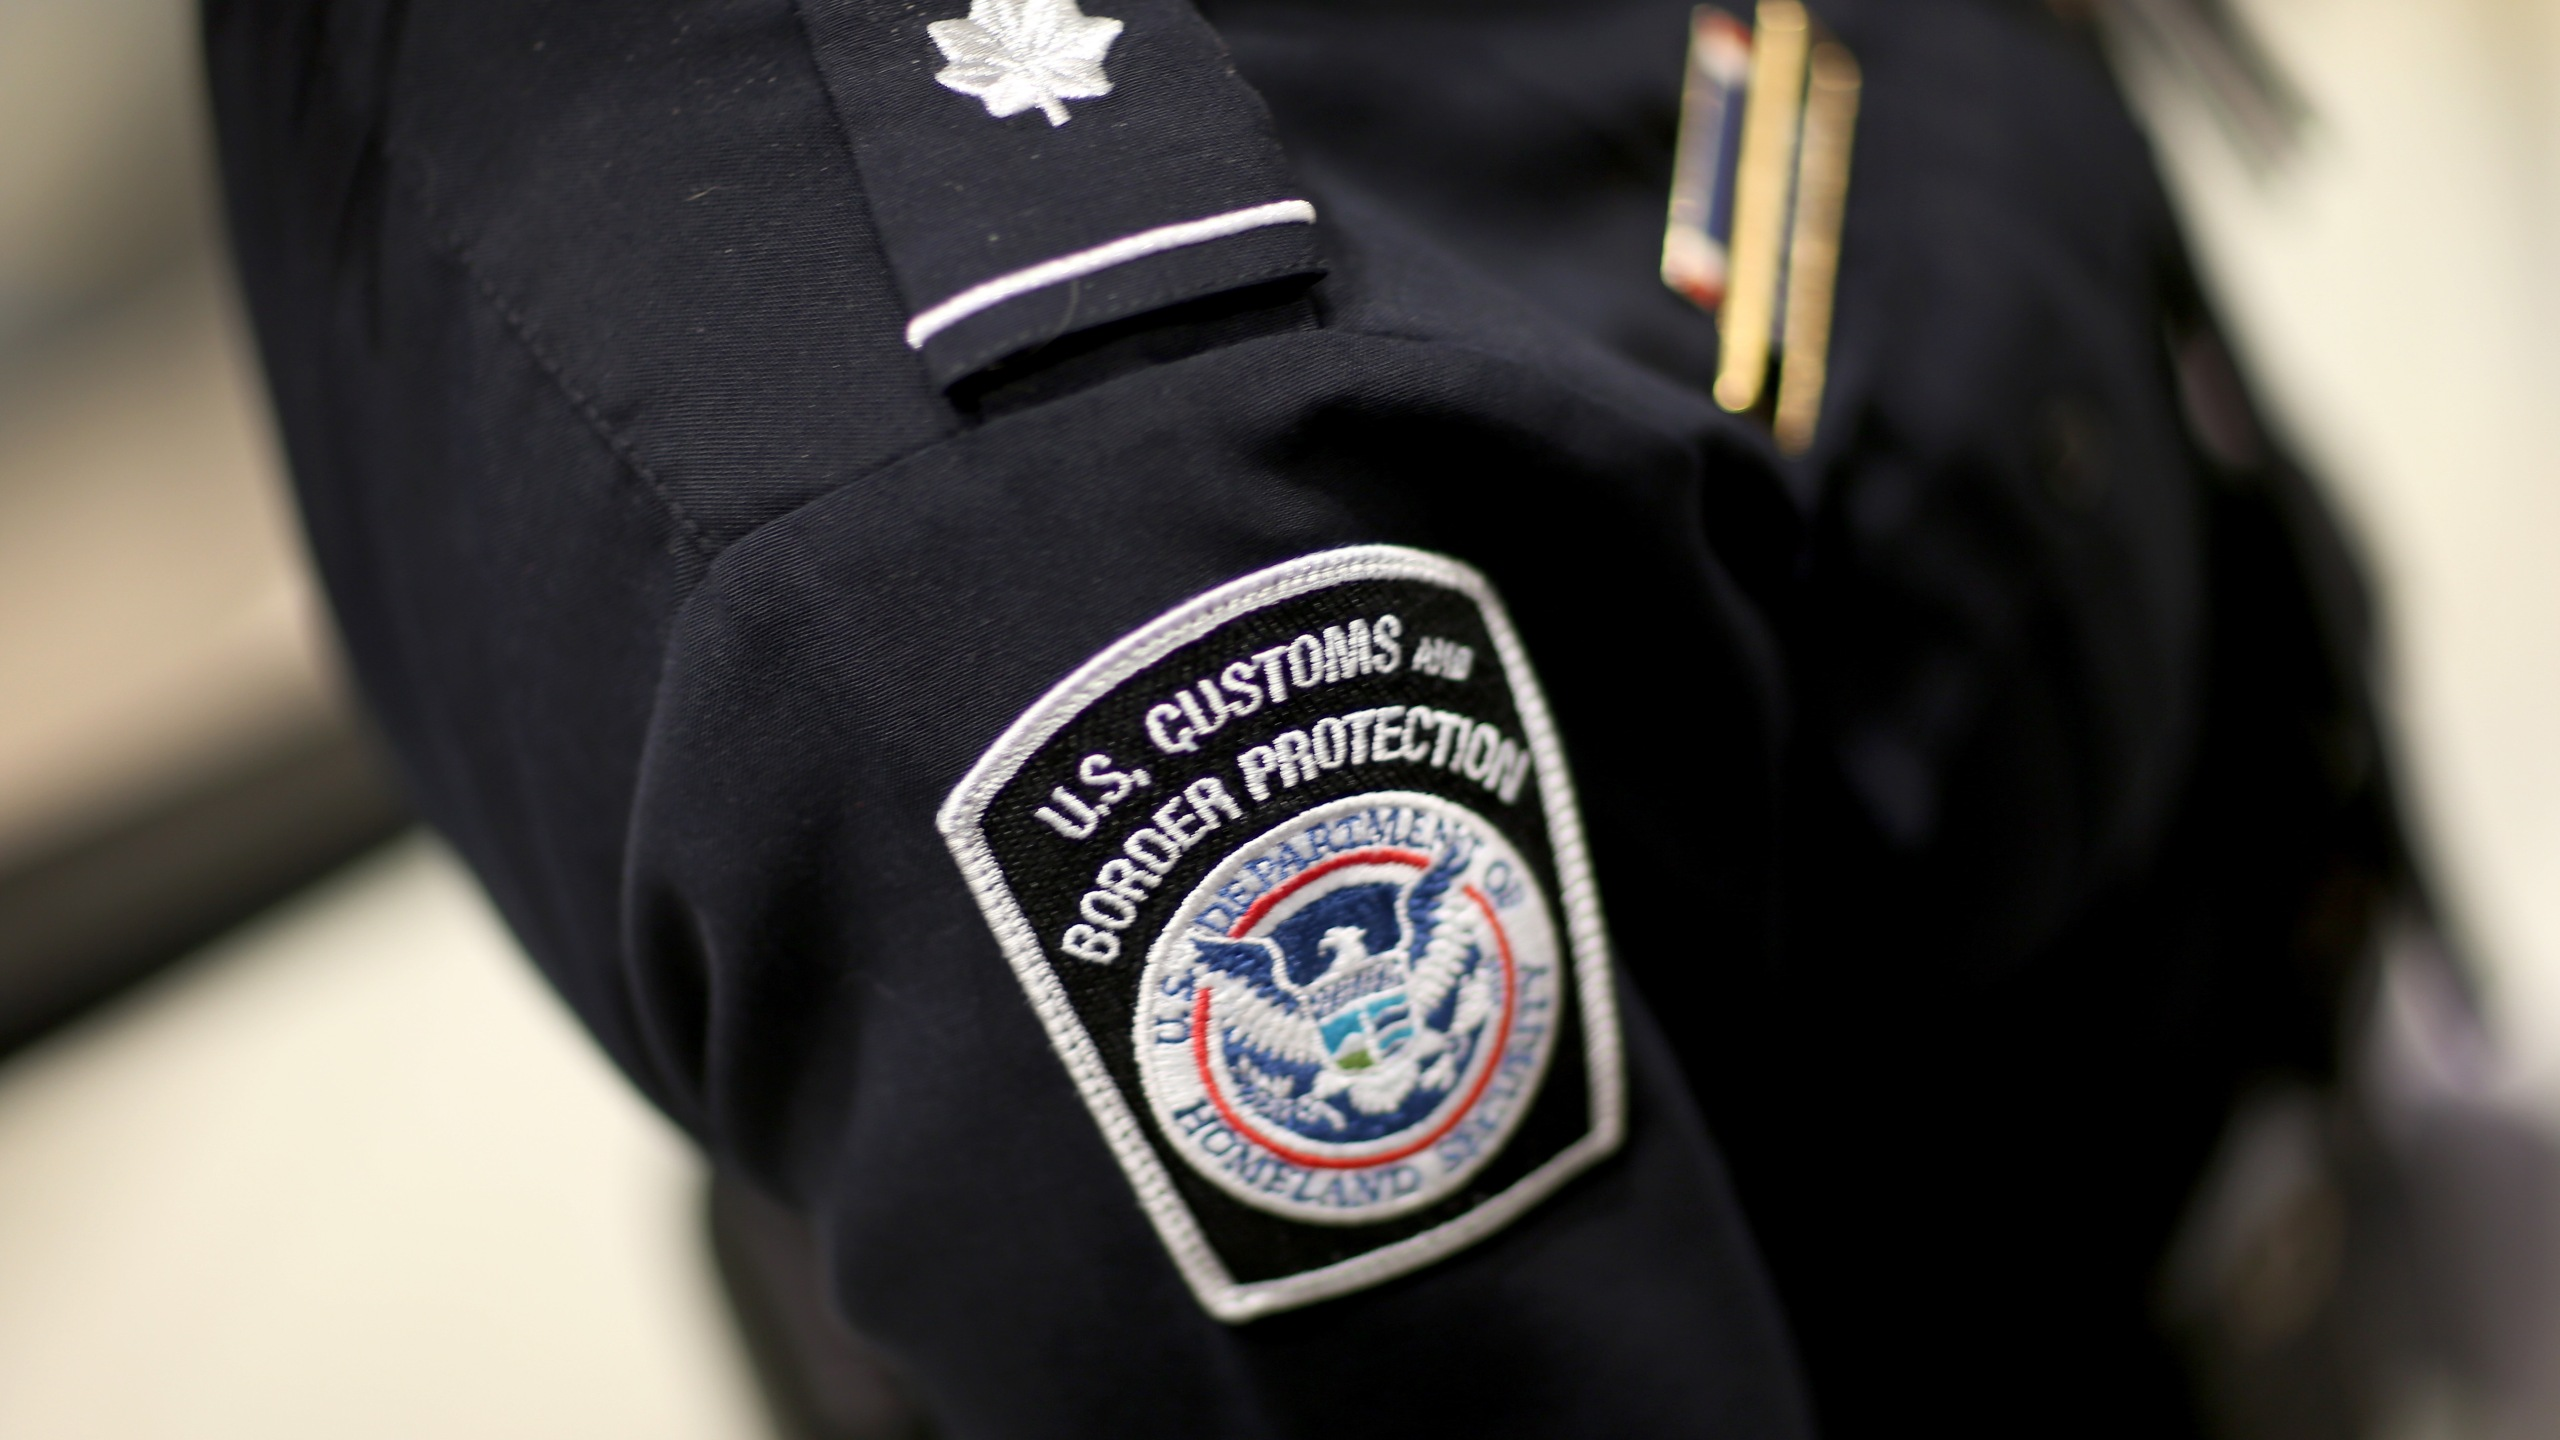 A U.S. Customs and Border Protection officer's patch is seen in a file photo taken on March 4, 2015. (Credit: Joe Raedle / Getty Images)